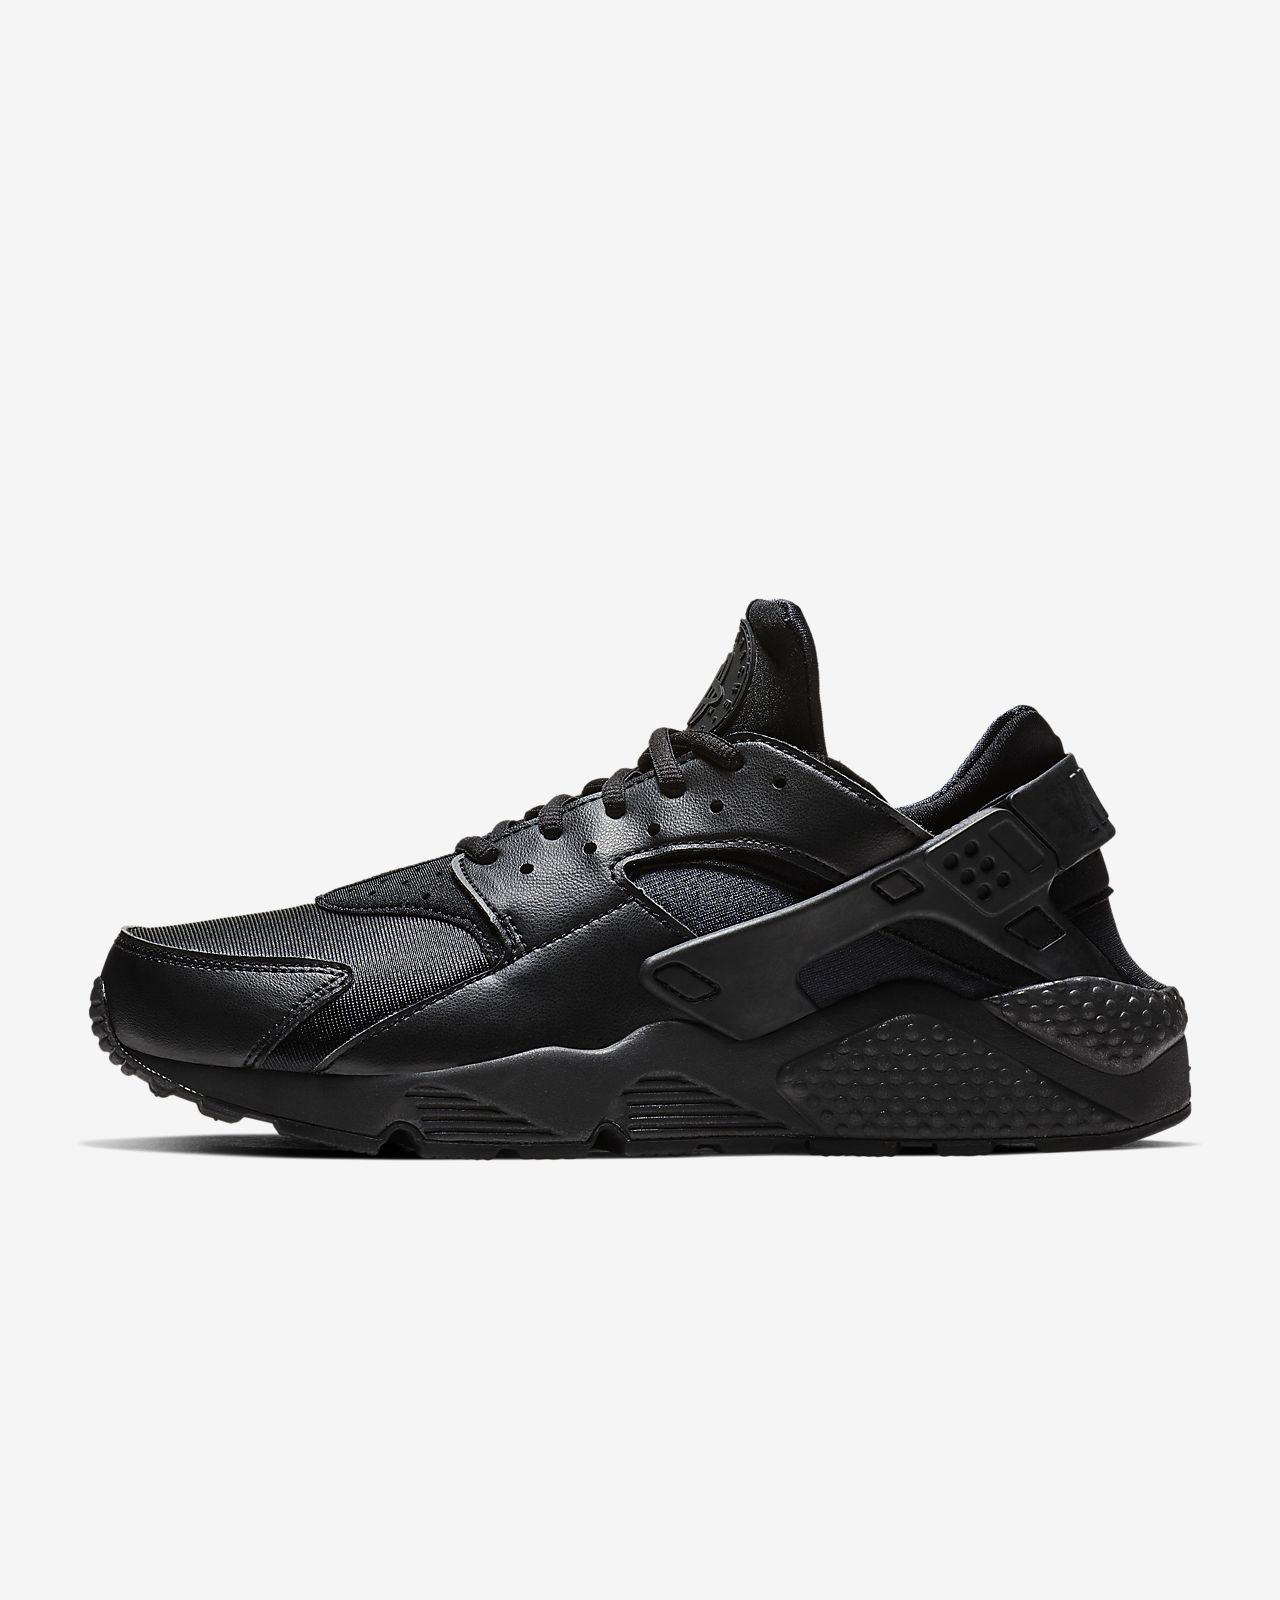 9e8925ea20c5 Low Resolution Nike Air Huarache Women s Shoe Nike Air Huarache Women s Shoe